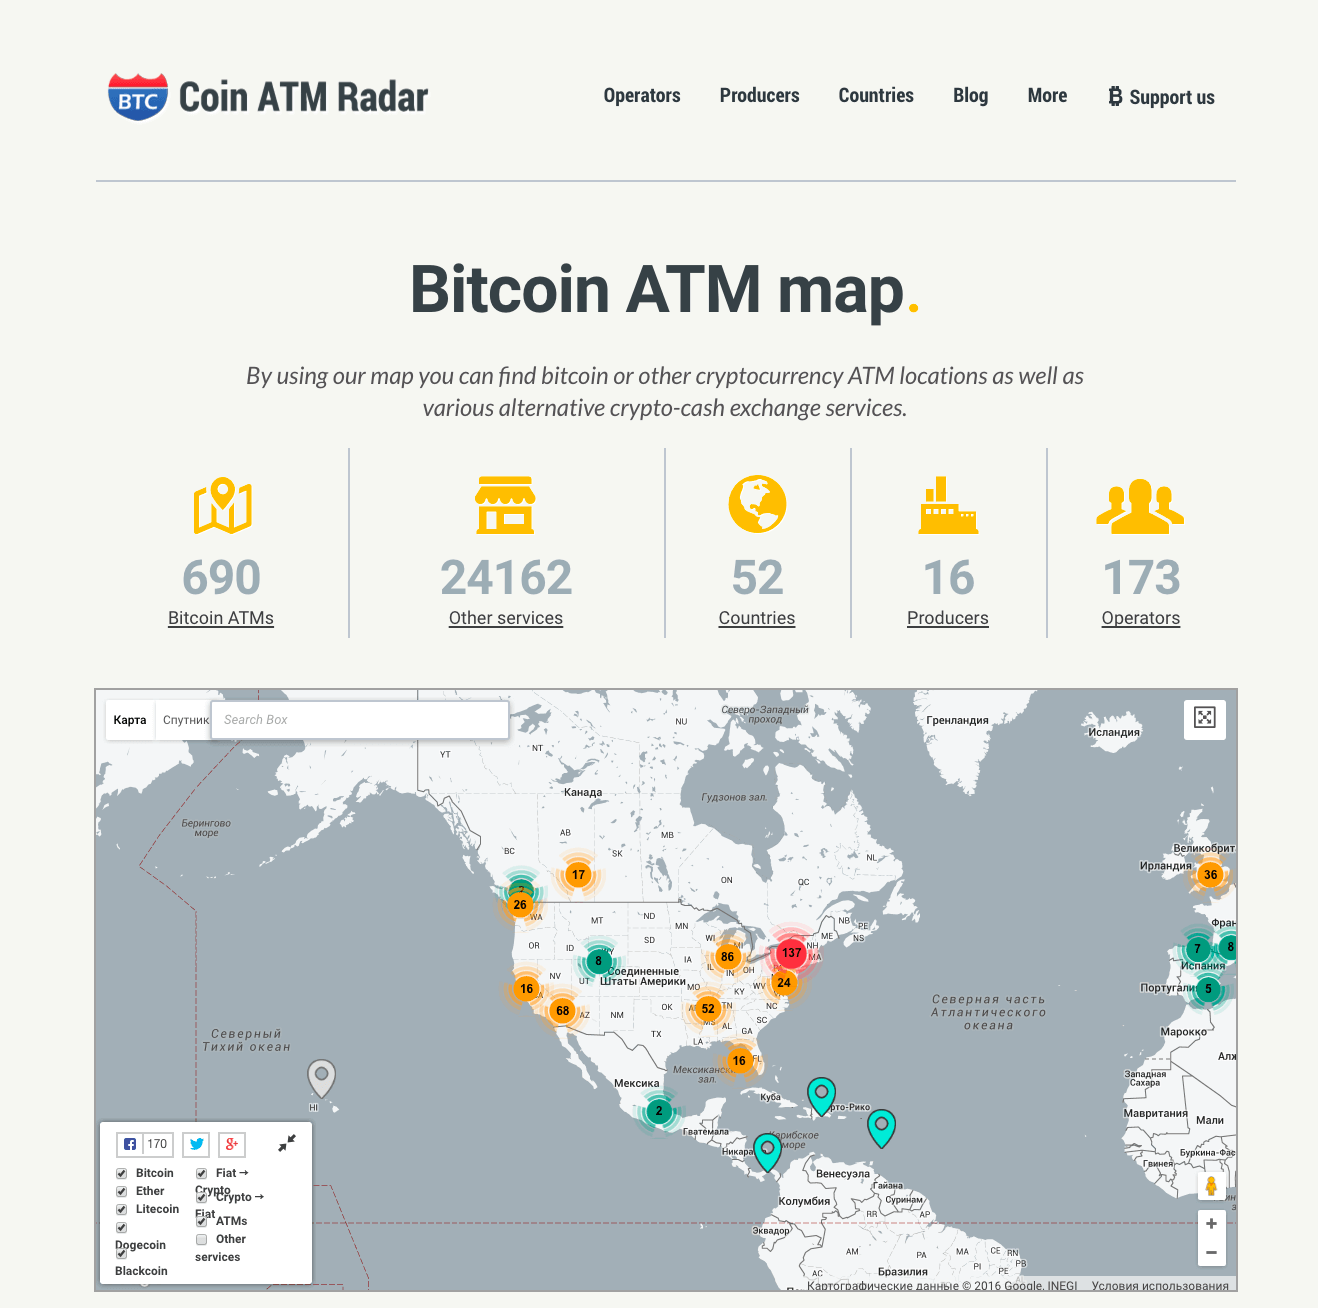 Buy Bitcoin at ATM with cash